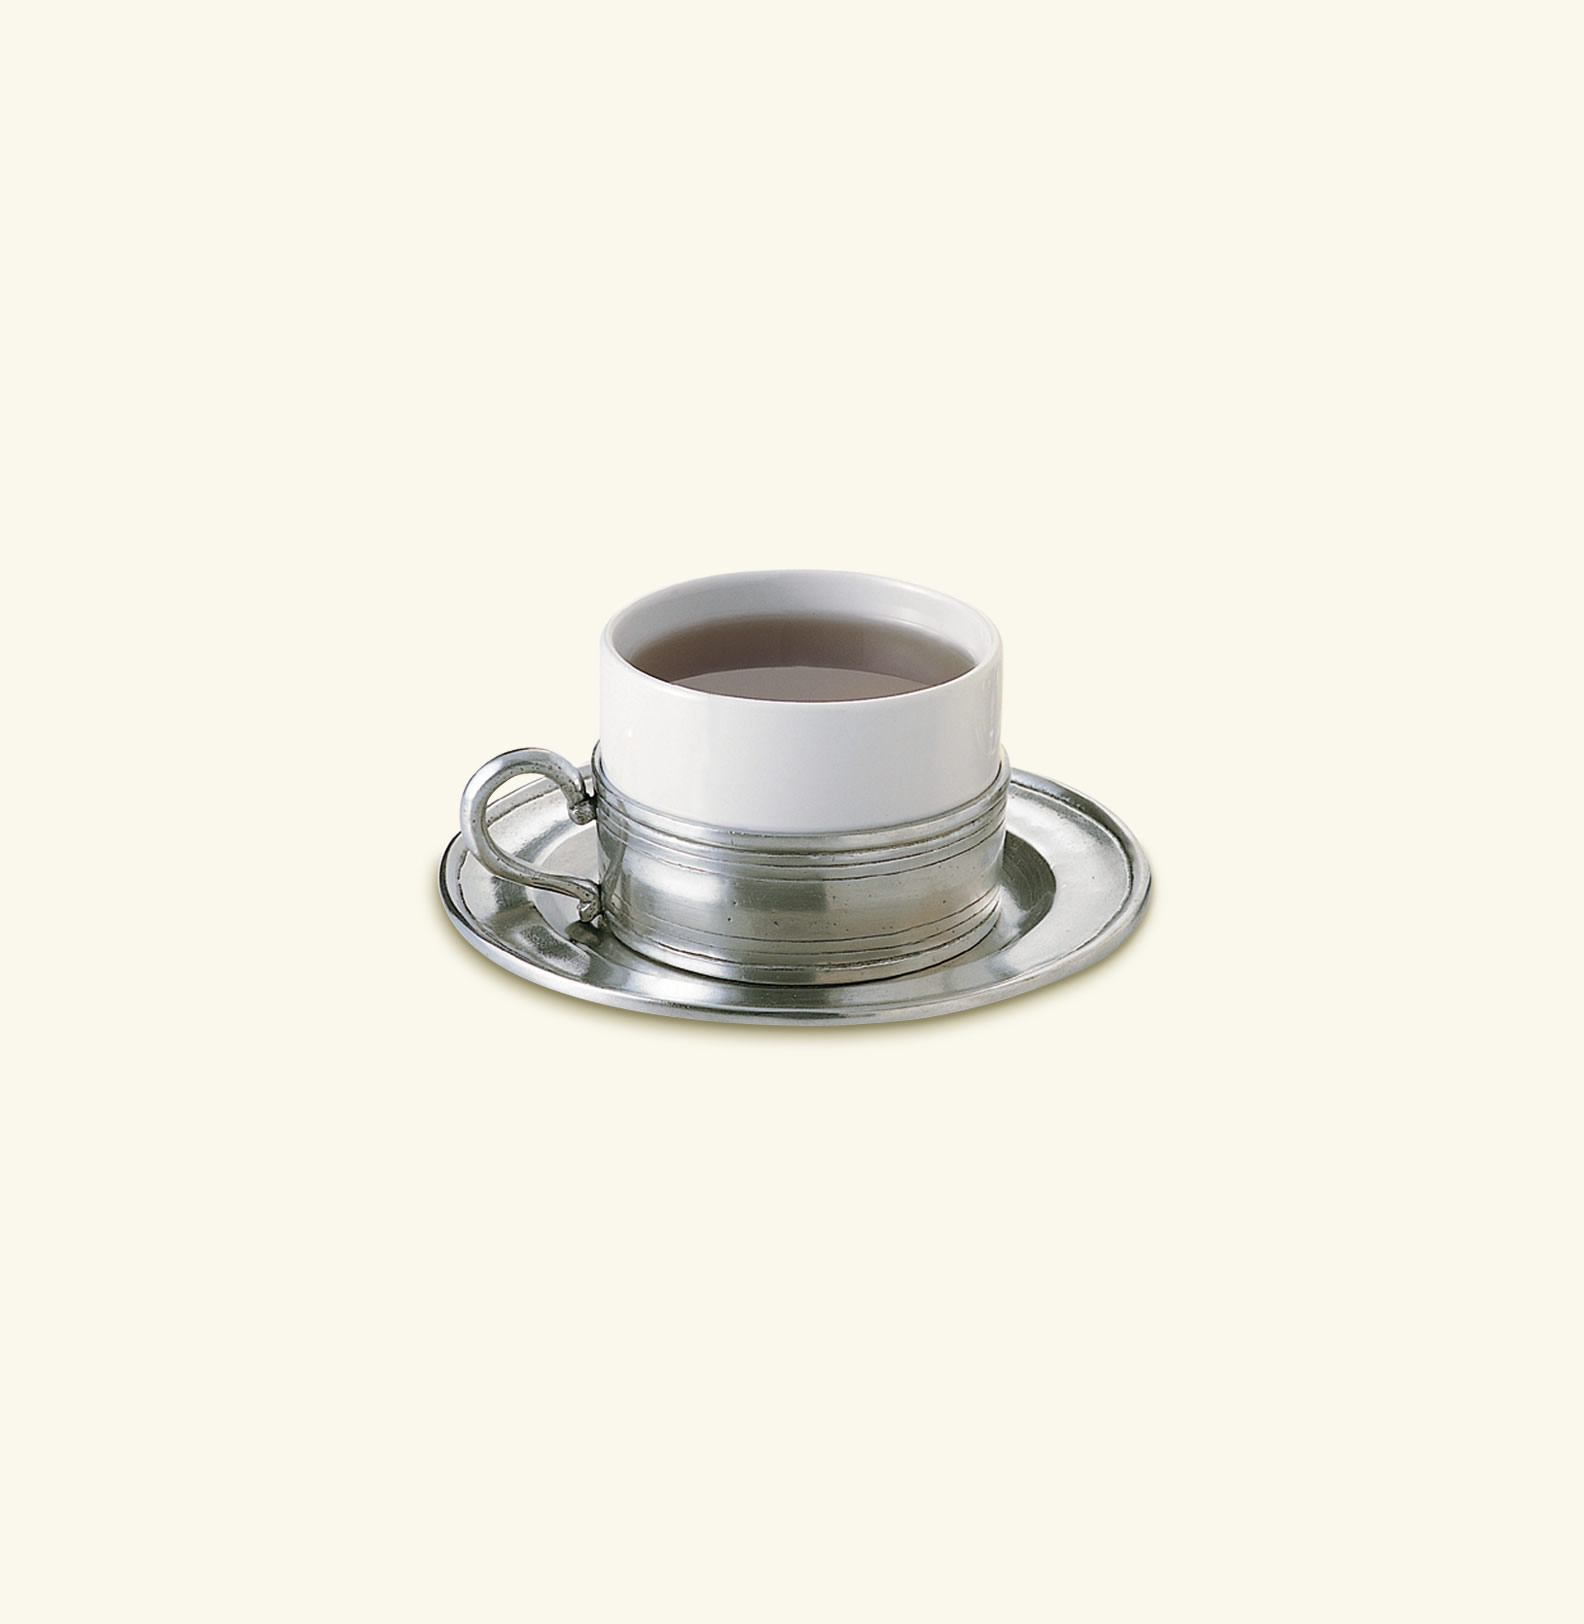 match-cappuccino-cup-with-saucer-4.0-oz-1111.5.jpg